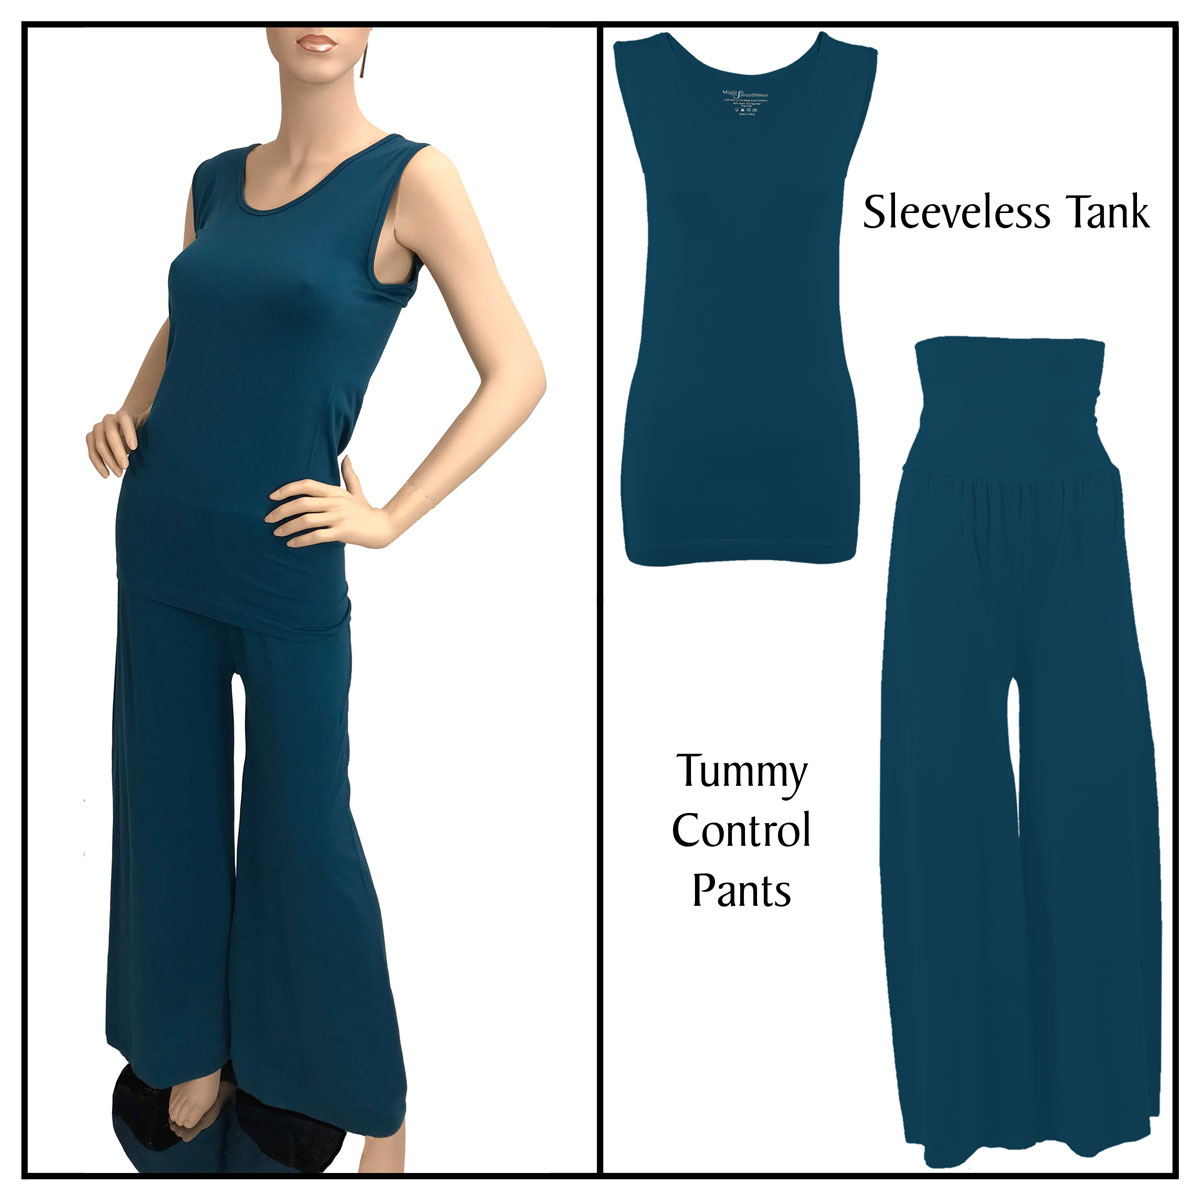 Smooth Beginnings (SmoothWear Sleeveless + Pants) - Dark Teal Sleeveless Top (One Size) with Pants